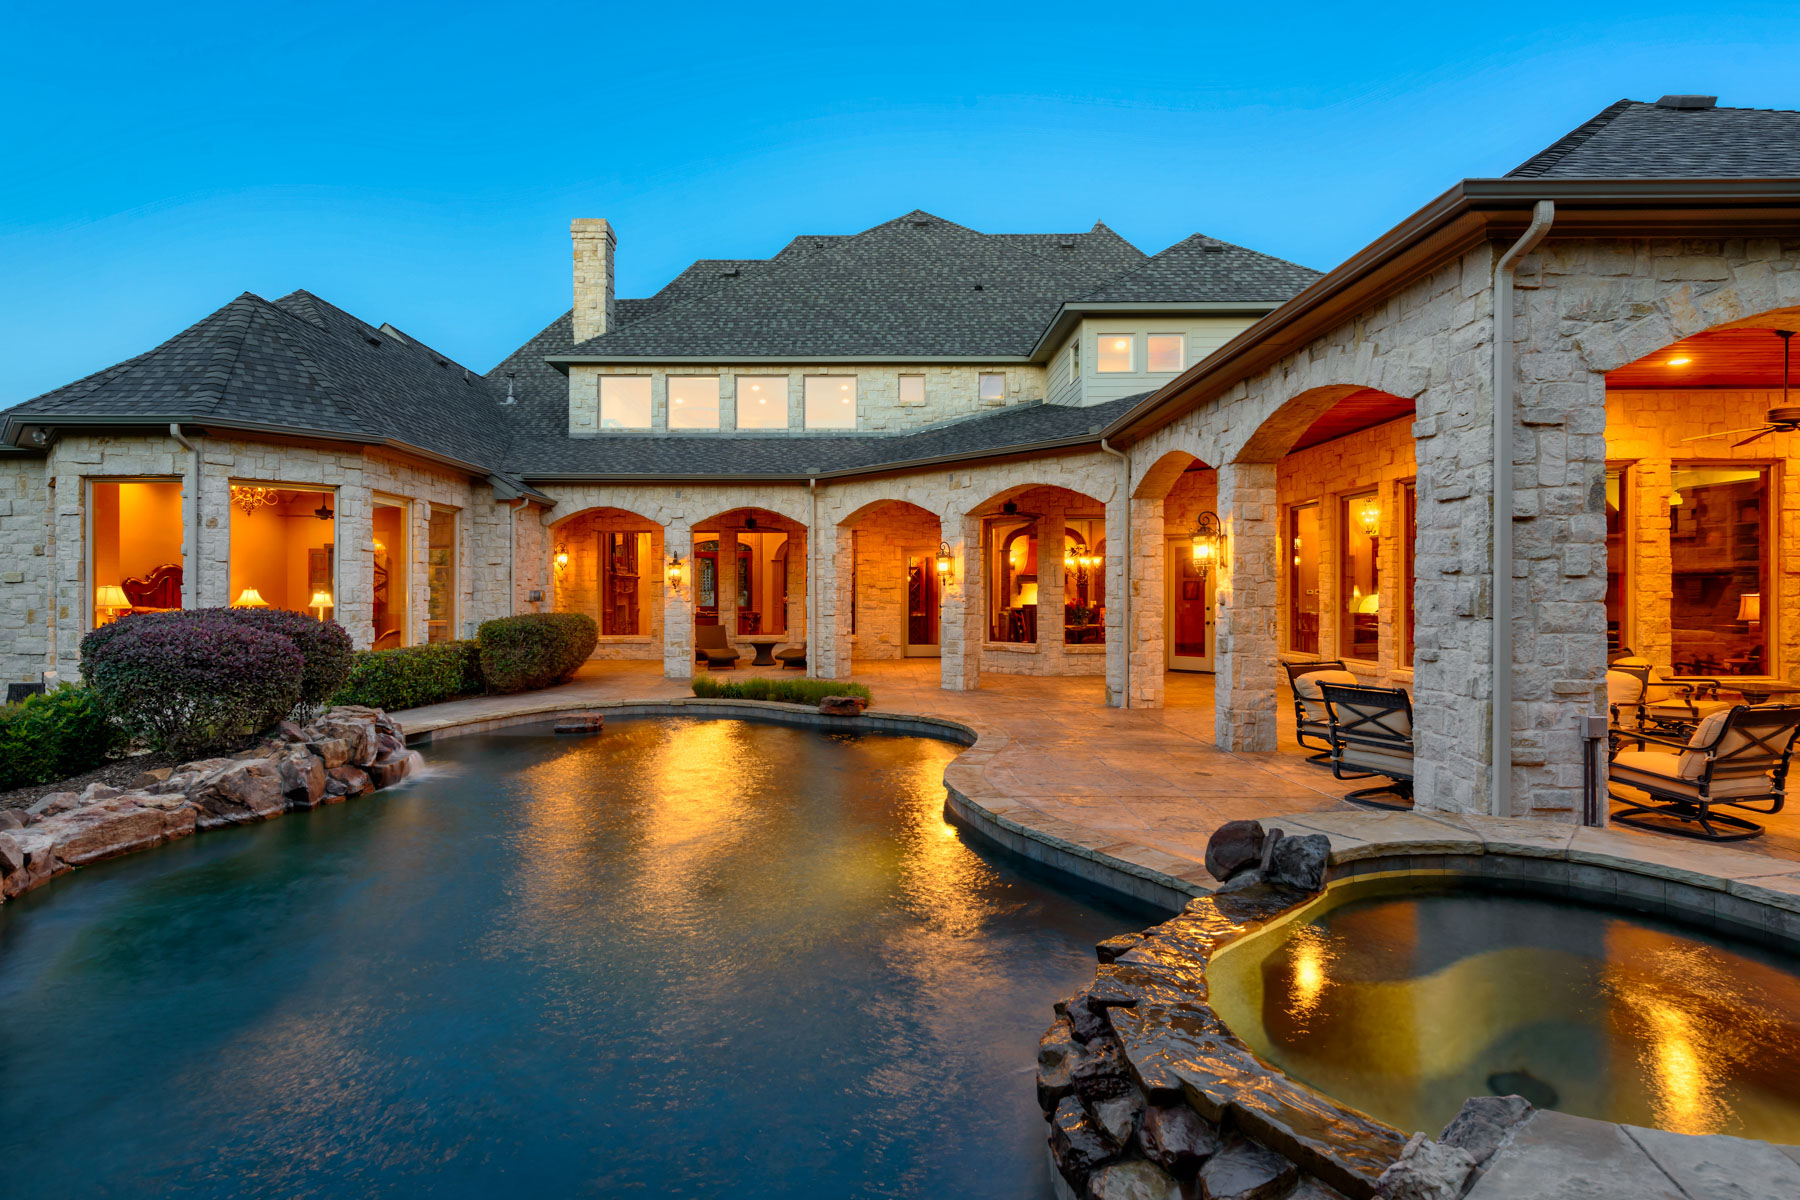 Single Family Home for Sale at Timeless Traditional 6441 Memorial Dr Frisco, Texas 75034 United States